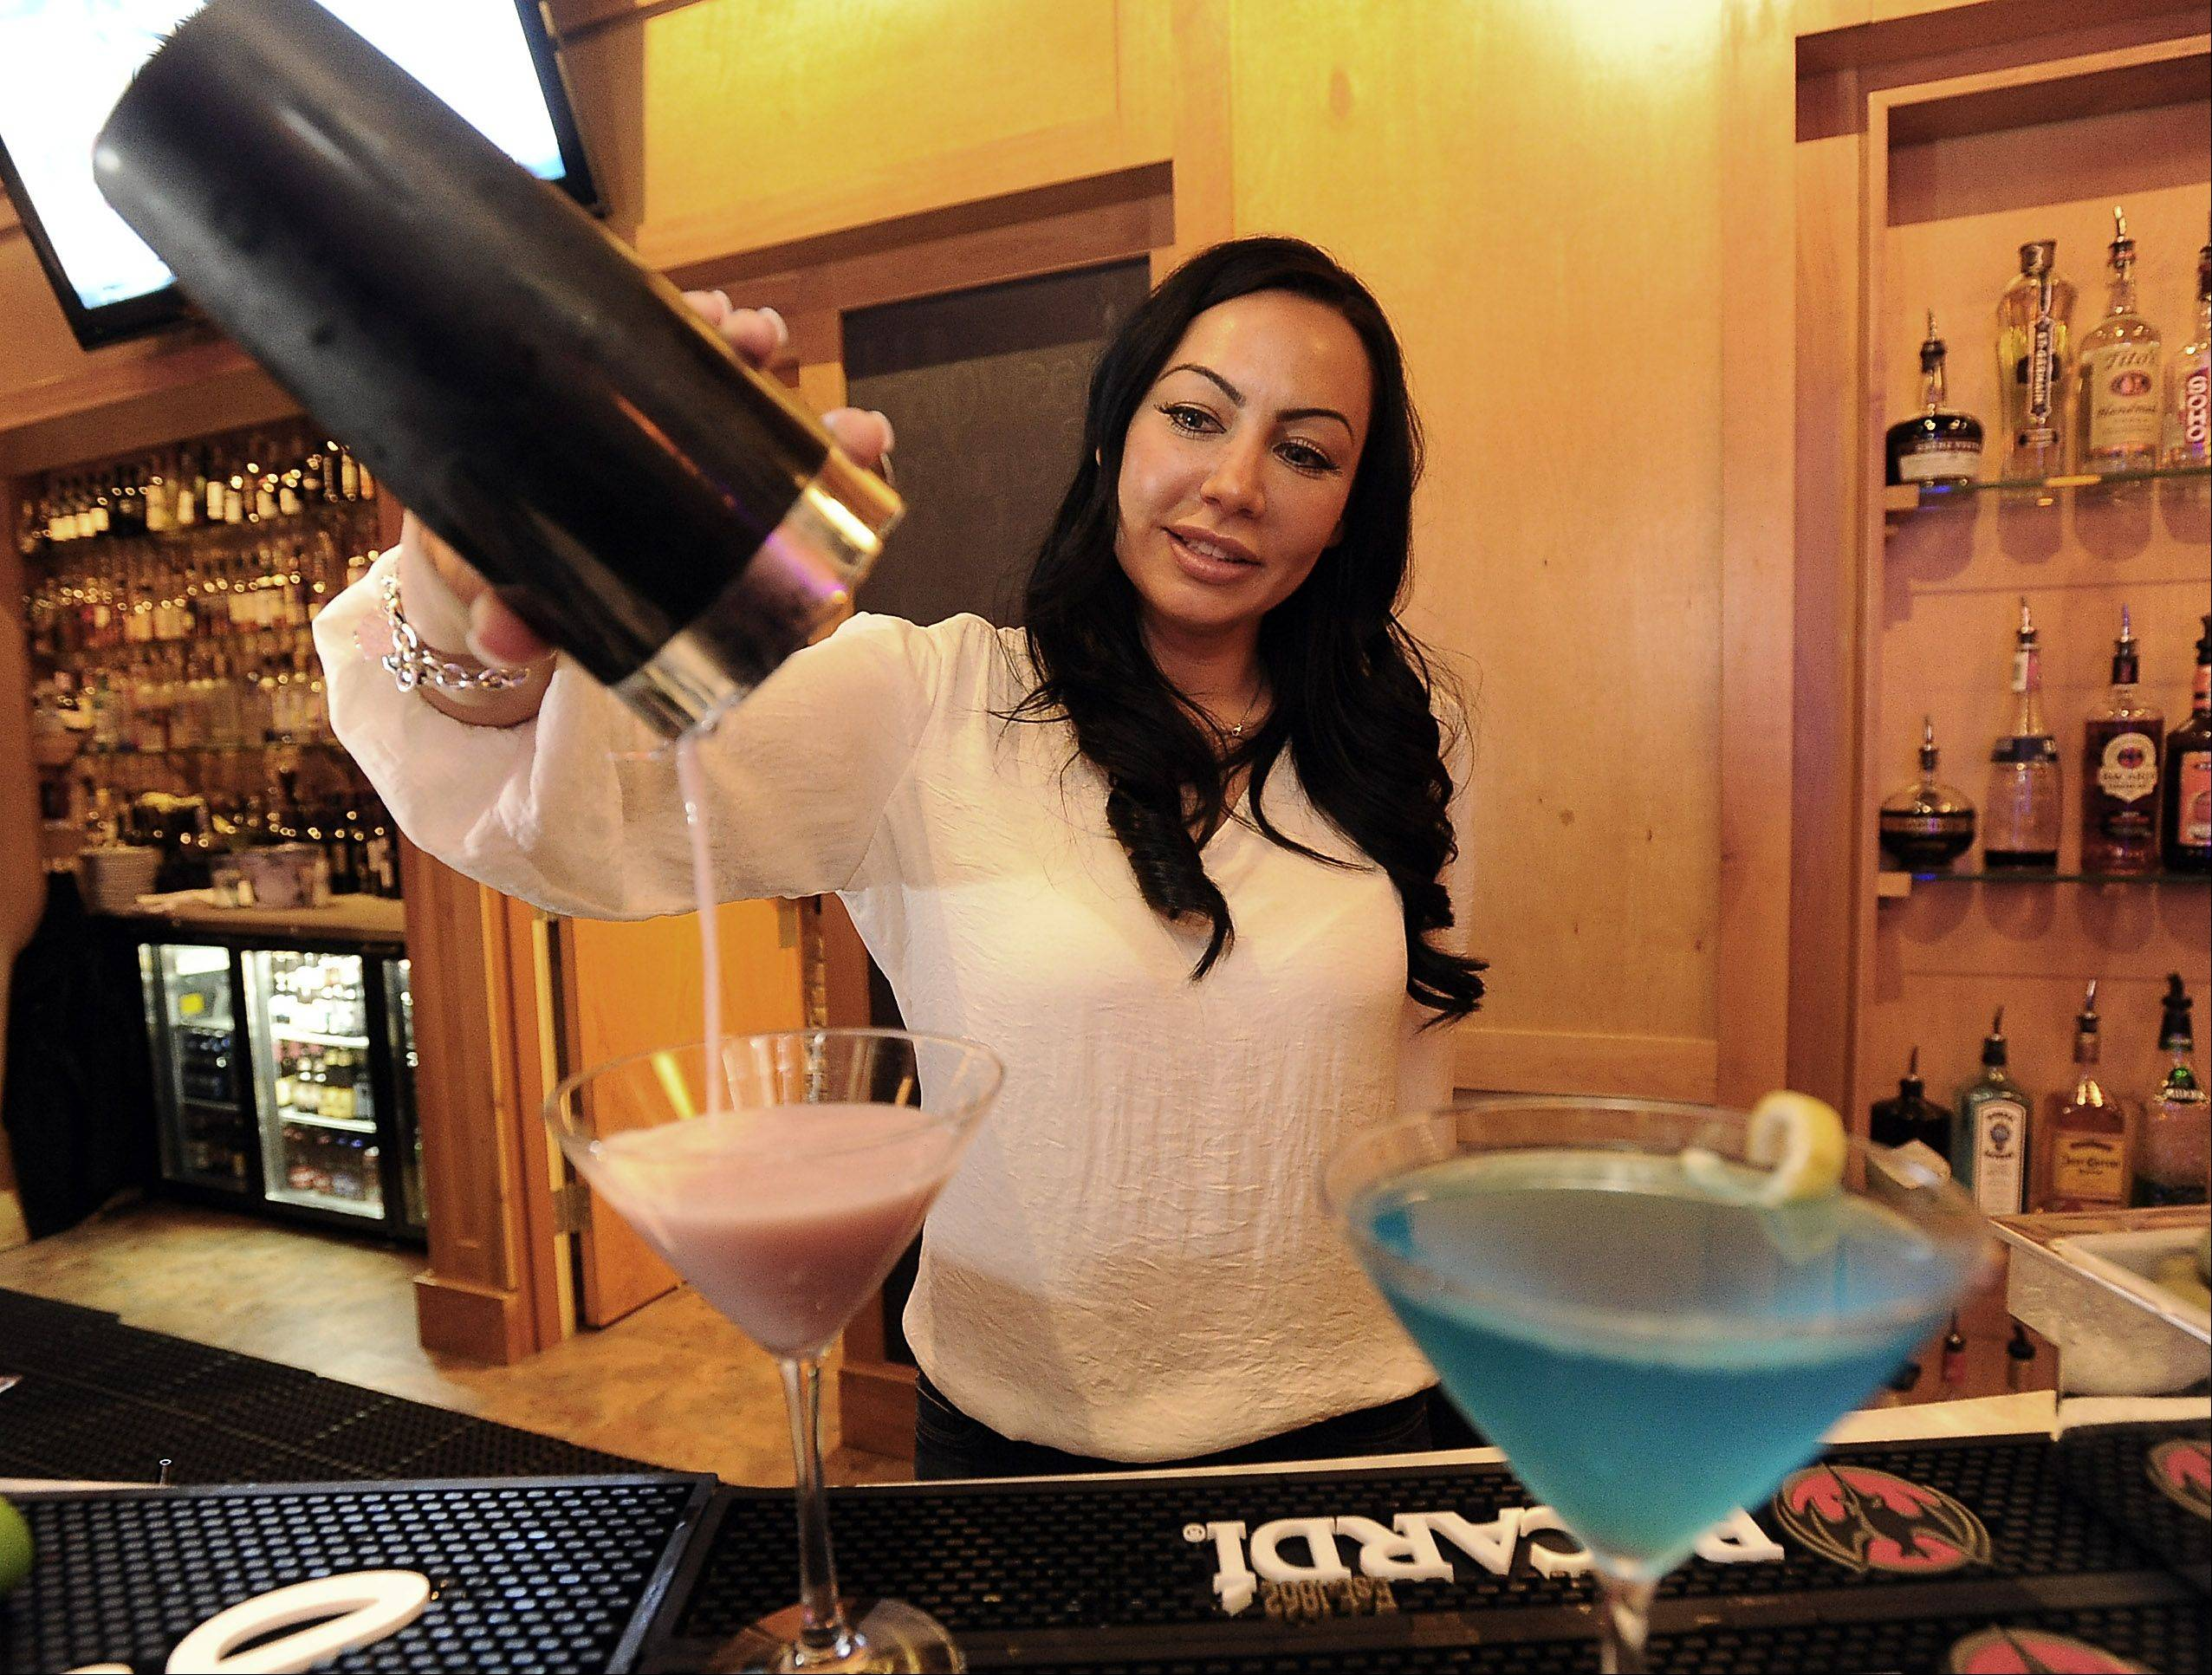 Bartender Diana Spence mixes up a martini at The Annex in Barrington.